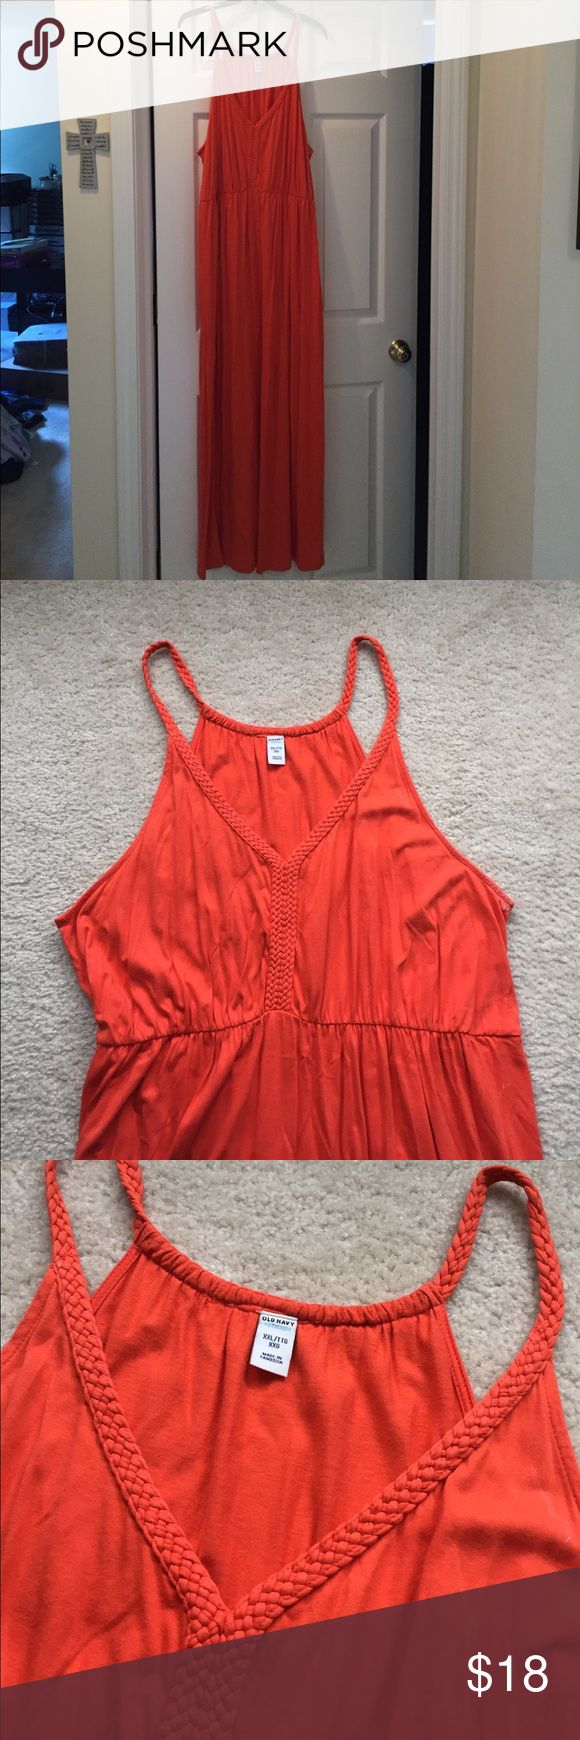 Old Navy orange maxi dress Old Navy orange maxi dress, braided top and straps. Size women's XXL. Like new, only worn 1-2 times. Floor length, no slit in skirt. Old Navy Dresses Maxi